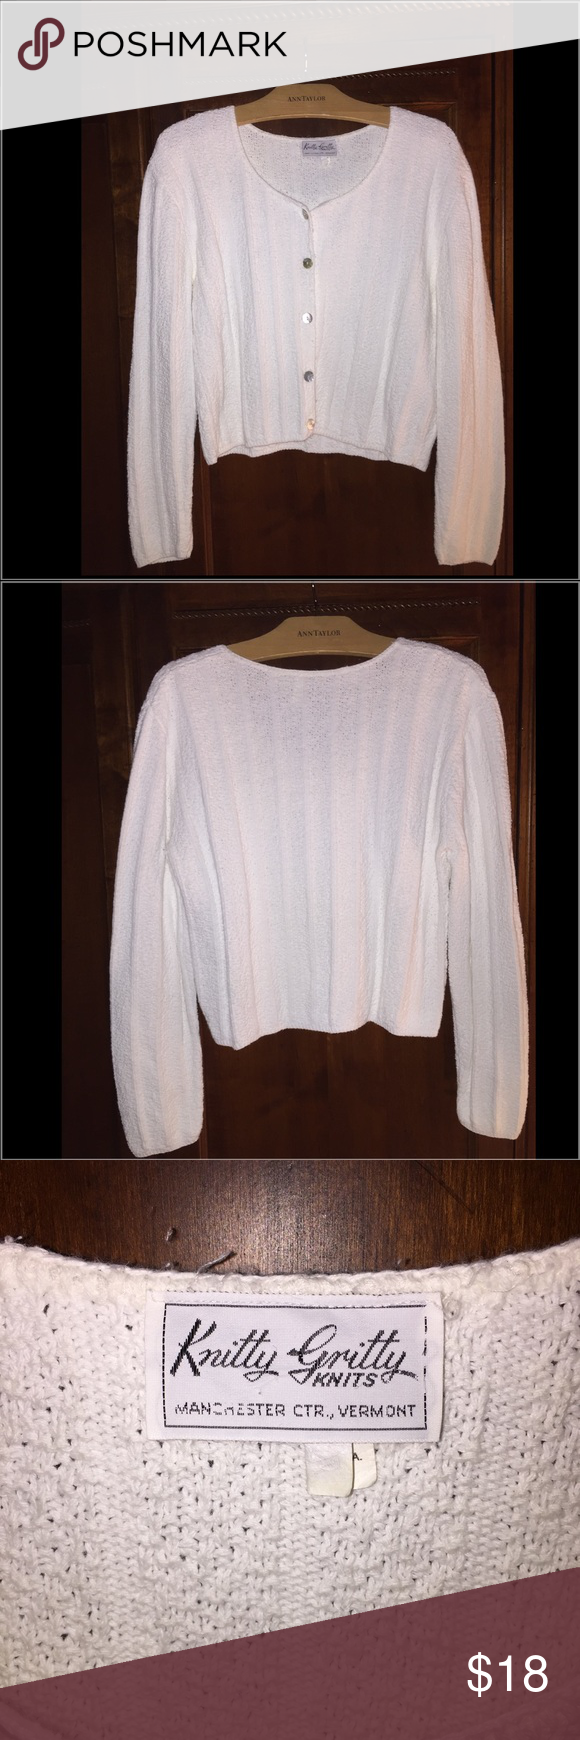 Knotty Gritty sweater❤️ Beautiful 100💯cotton very white button down in great shape. Very gently worn a few times. Knitty Gritty Vermont Sweaters Cardigans